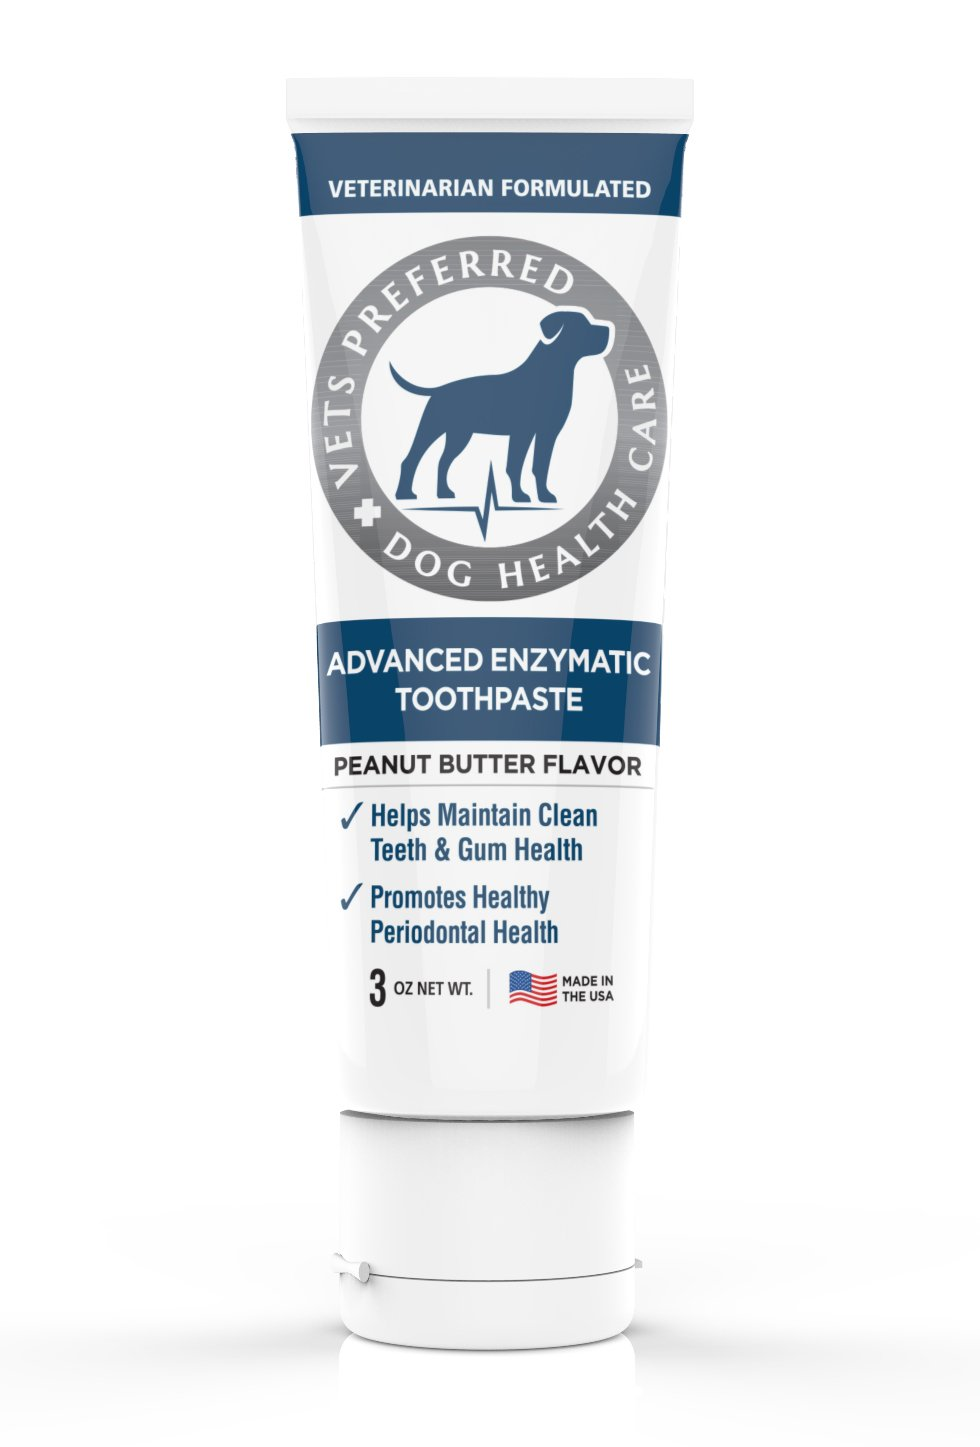 Vets Preferred Advanced Enzymatic Toothpaste for Dogs Veterinarian-Grade, Safe and Natural Dog Toothpaste Freshens Dog Breath, Fights Plaque and Reduces Tartar, Peanut Butter Flavor